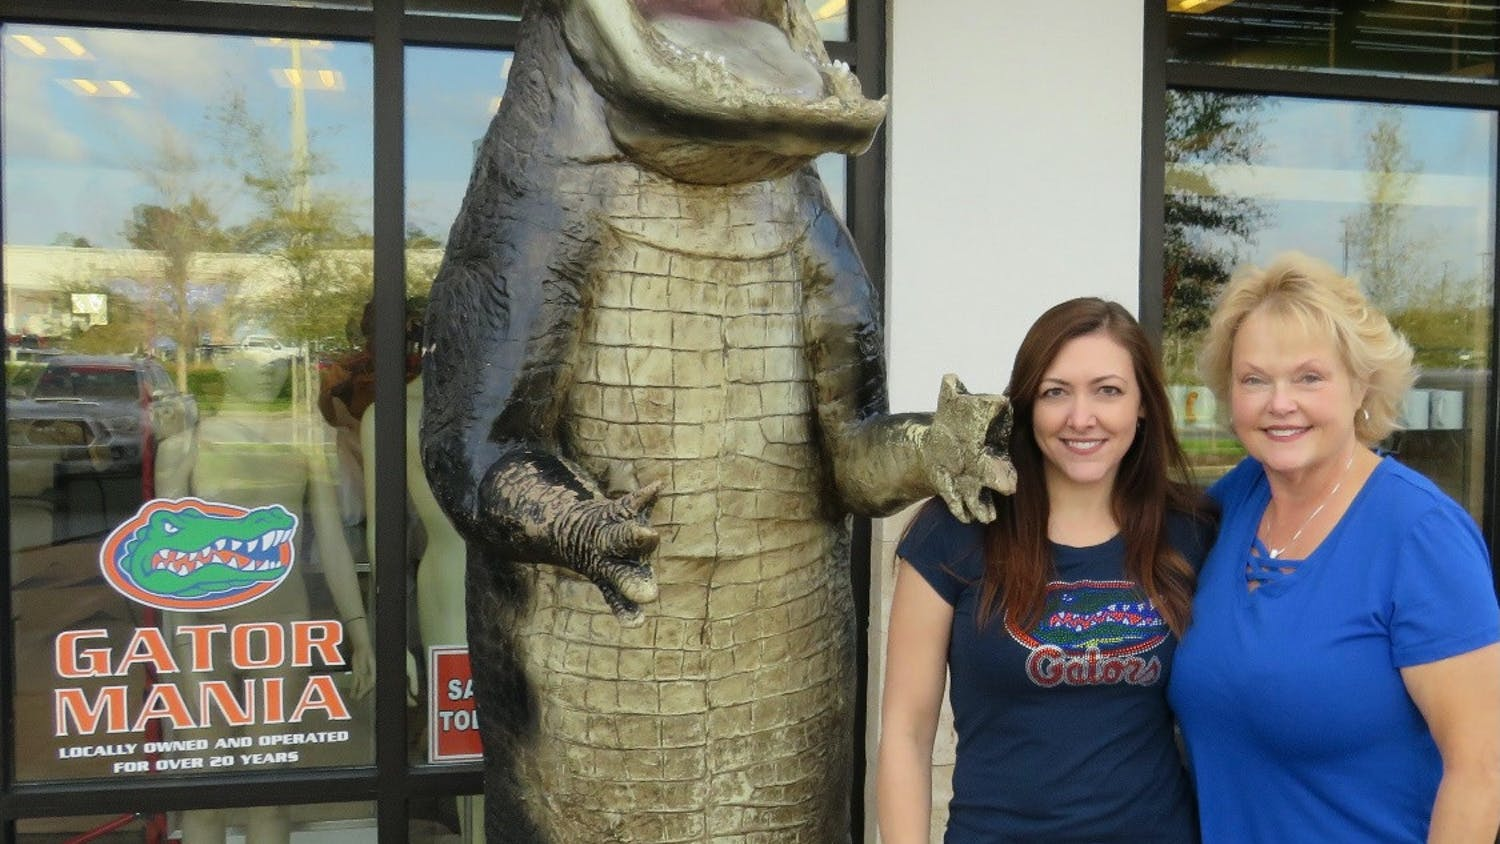 Lisa Blum and Jenice Bushnell stand in front of Gator Mania with their 12-foot fiberglass alligator. [Photo courtesy of Lisa Blum]